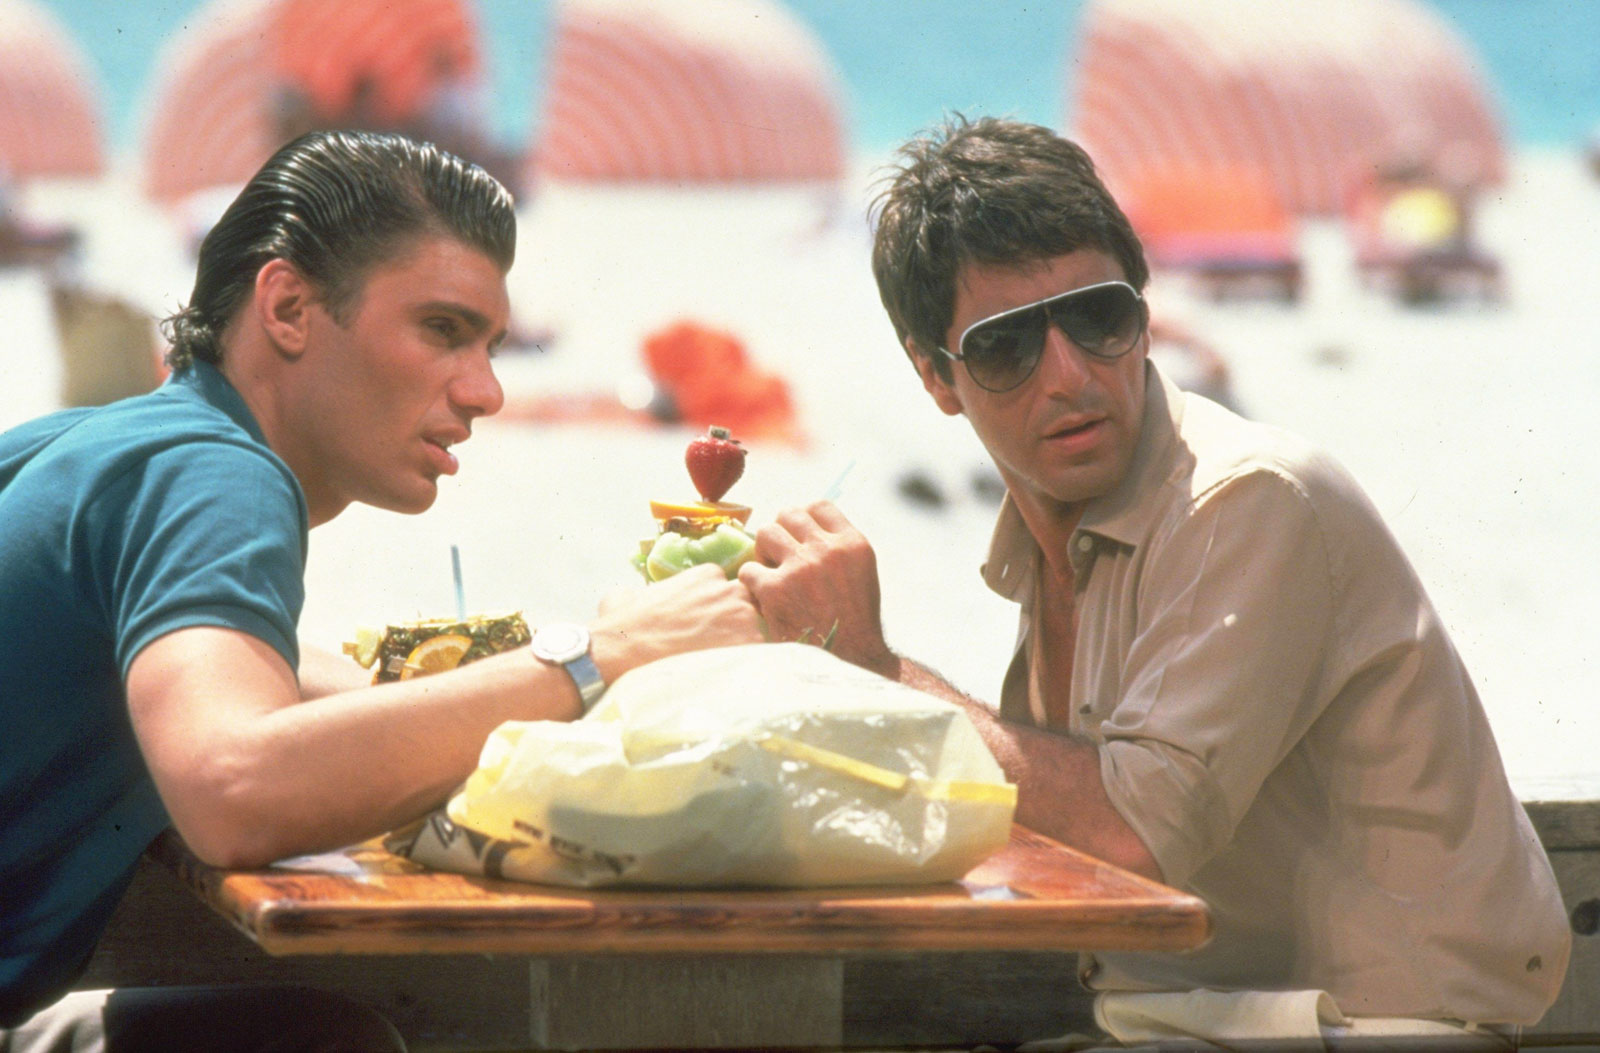 Al Pacino Scarface Steven Bauer Brian De Say Hello To These Little Facts You Probably Didn't Know About Scarface